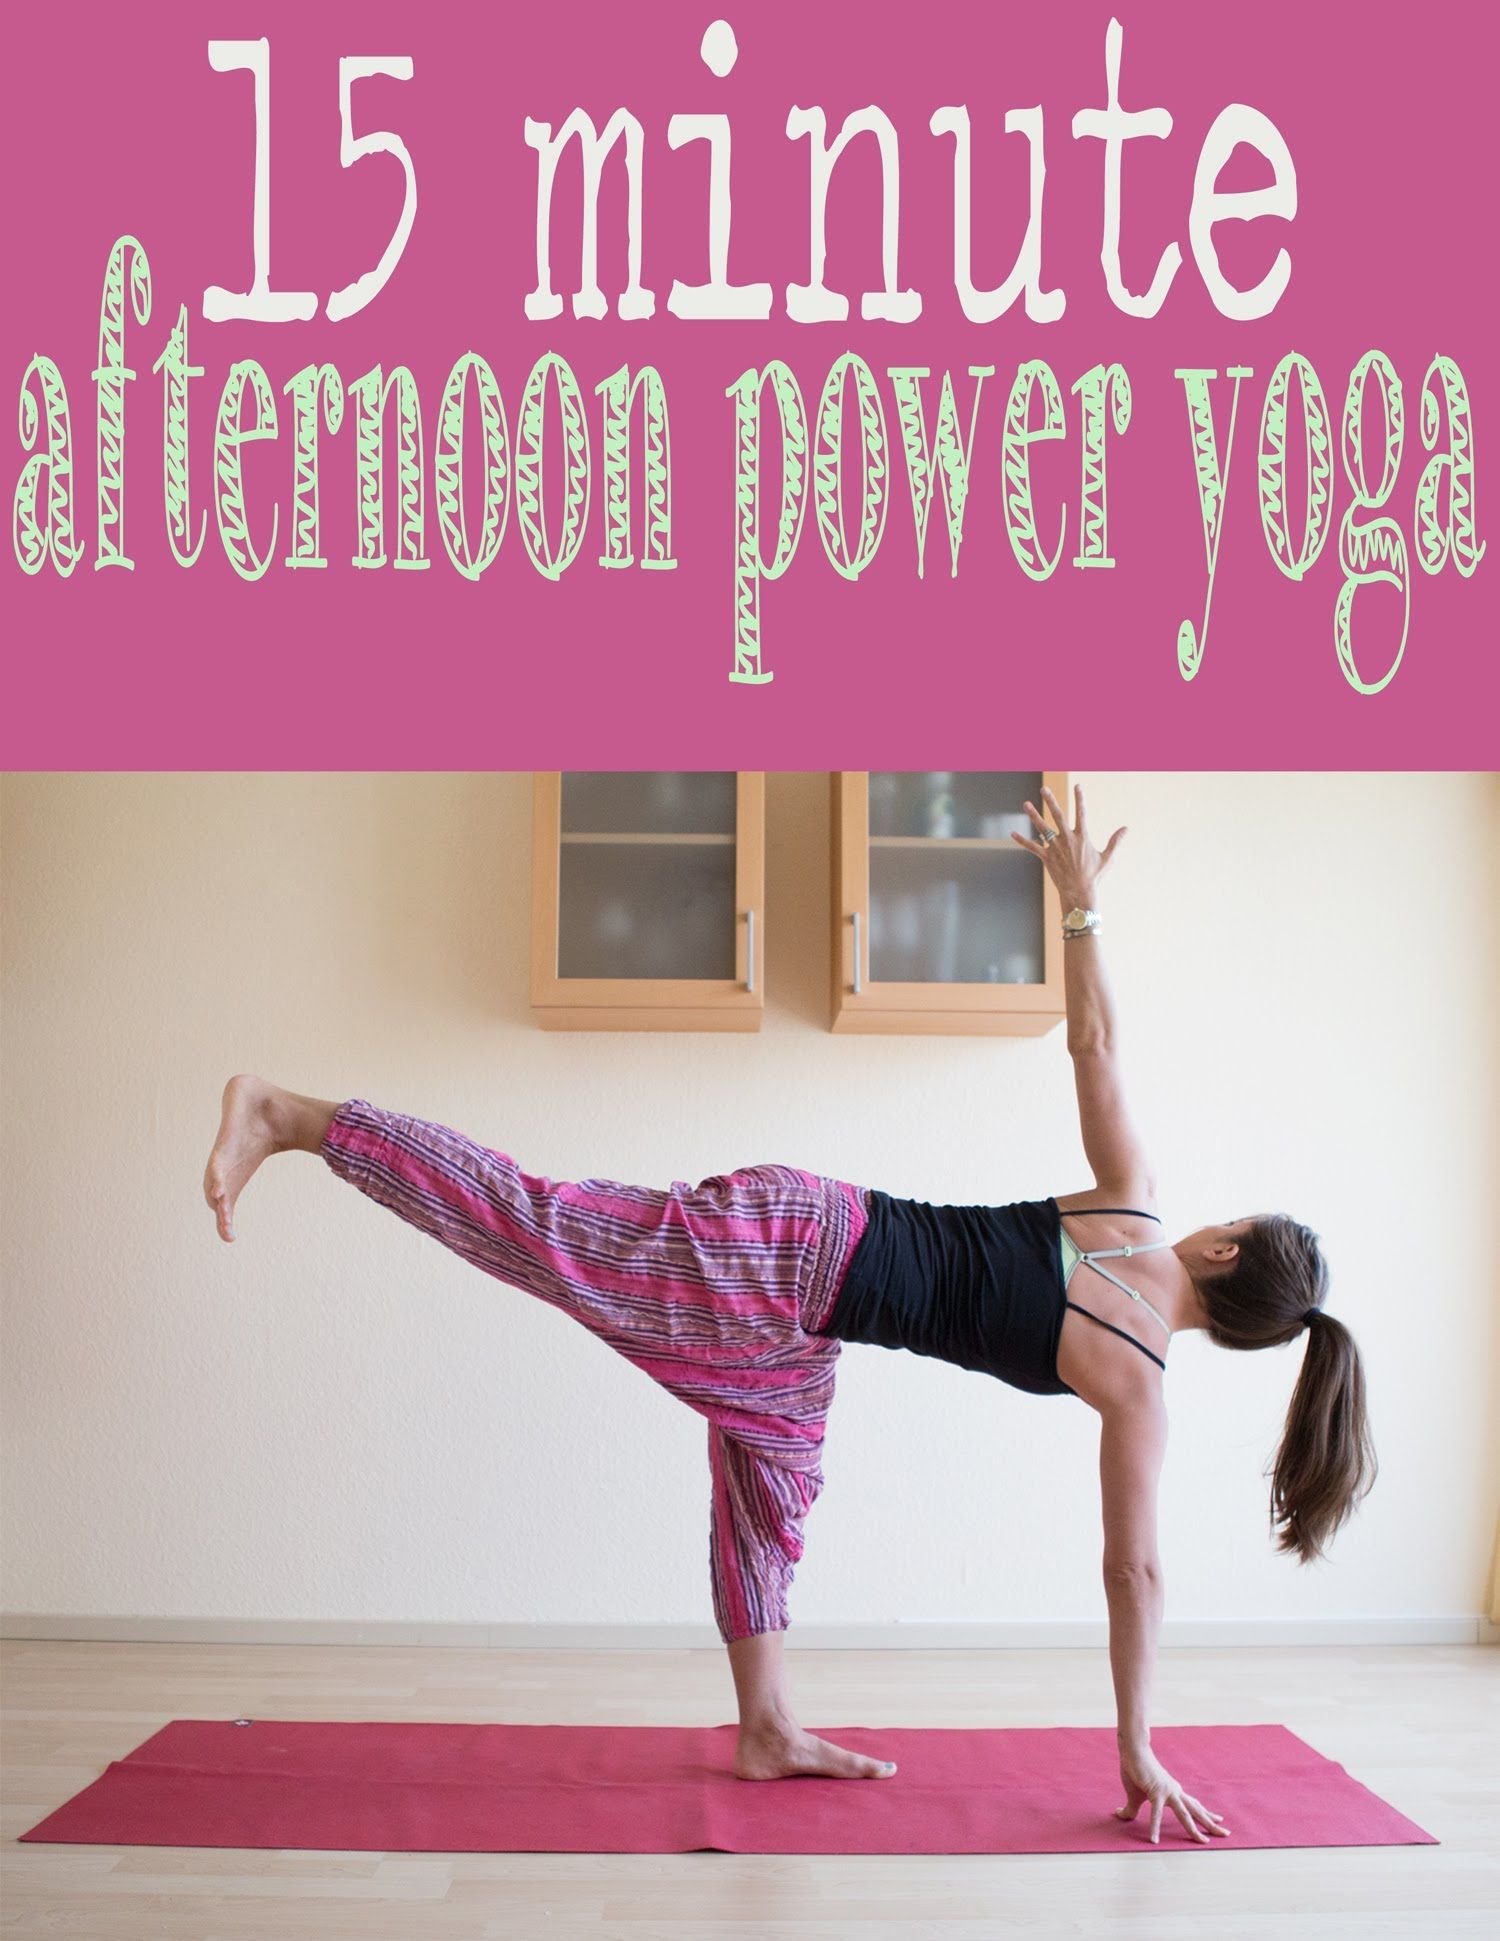 A 15 Min Instructional Power Yoga Video Best For Experienced Yoga